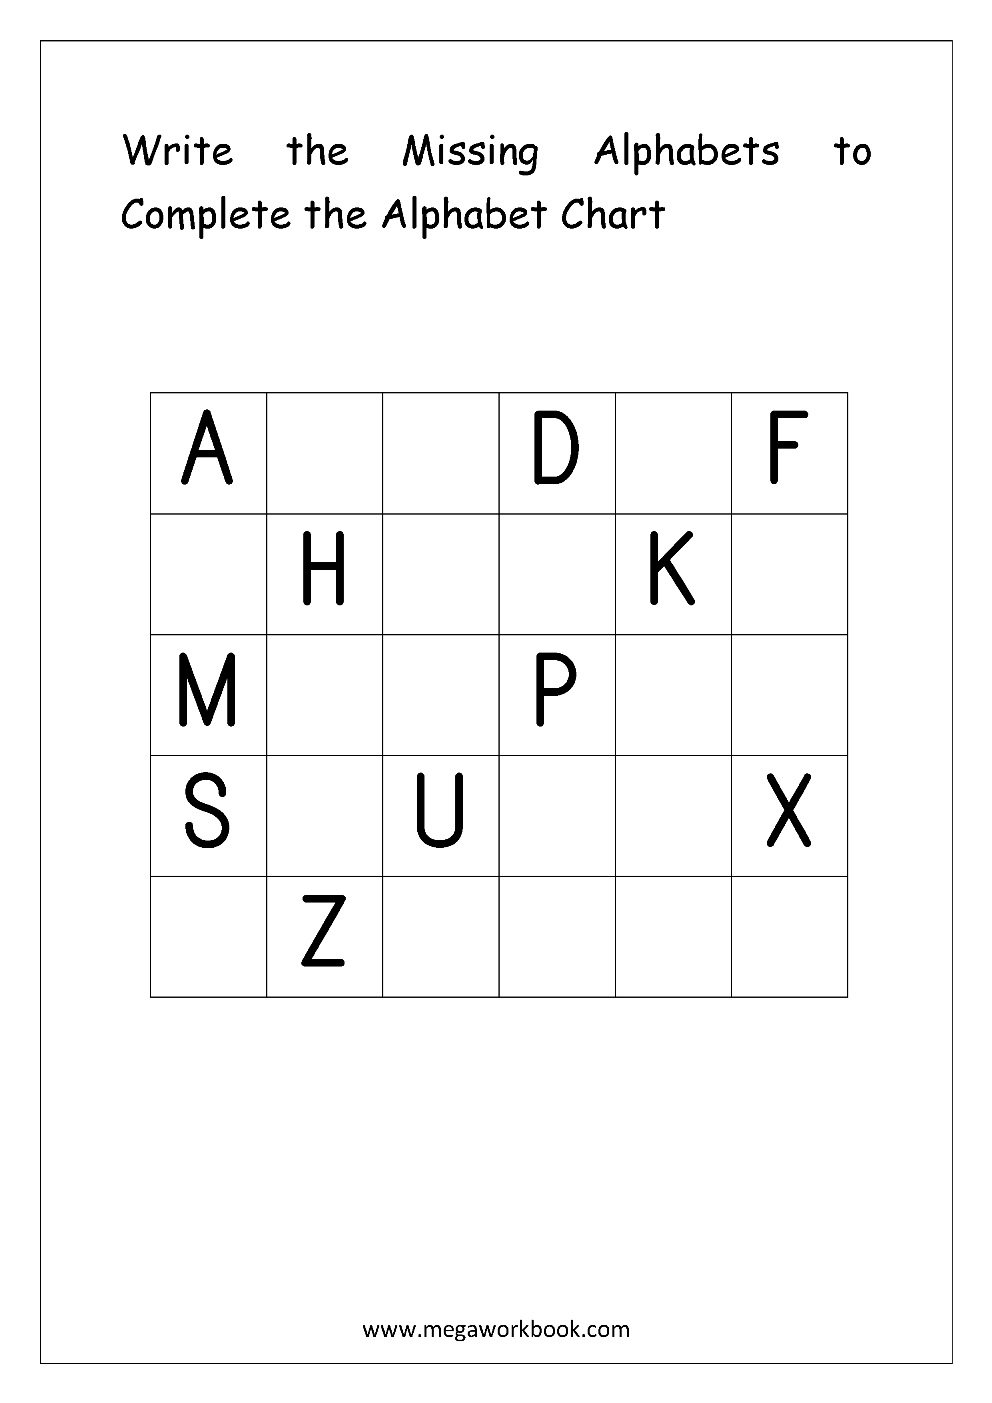 Free English Worksheets - Alphabetical Sequence - MegaWorkbook